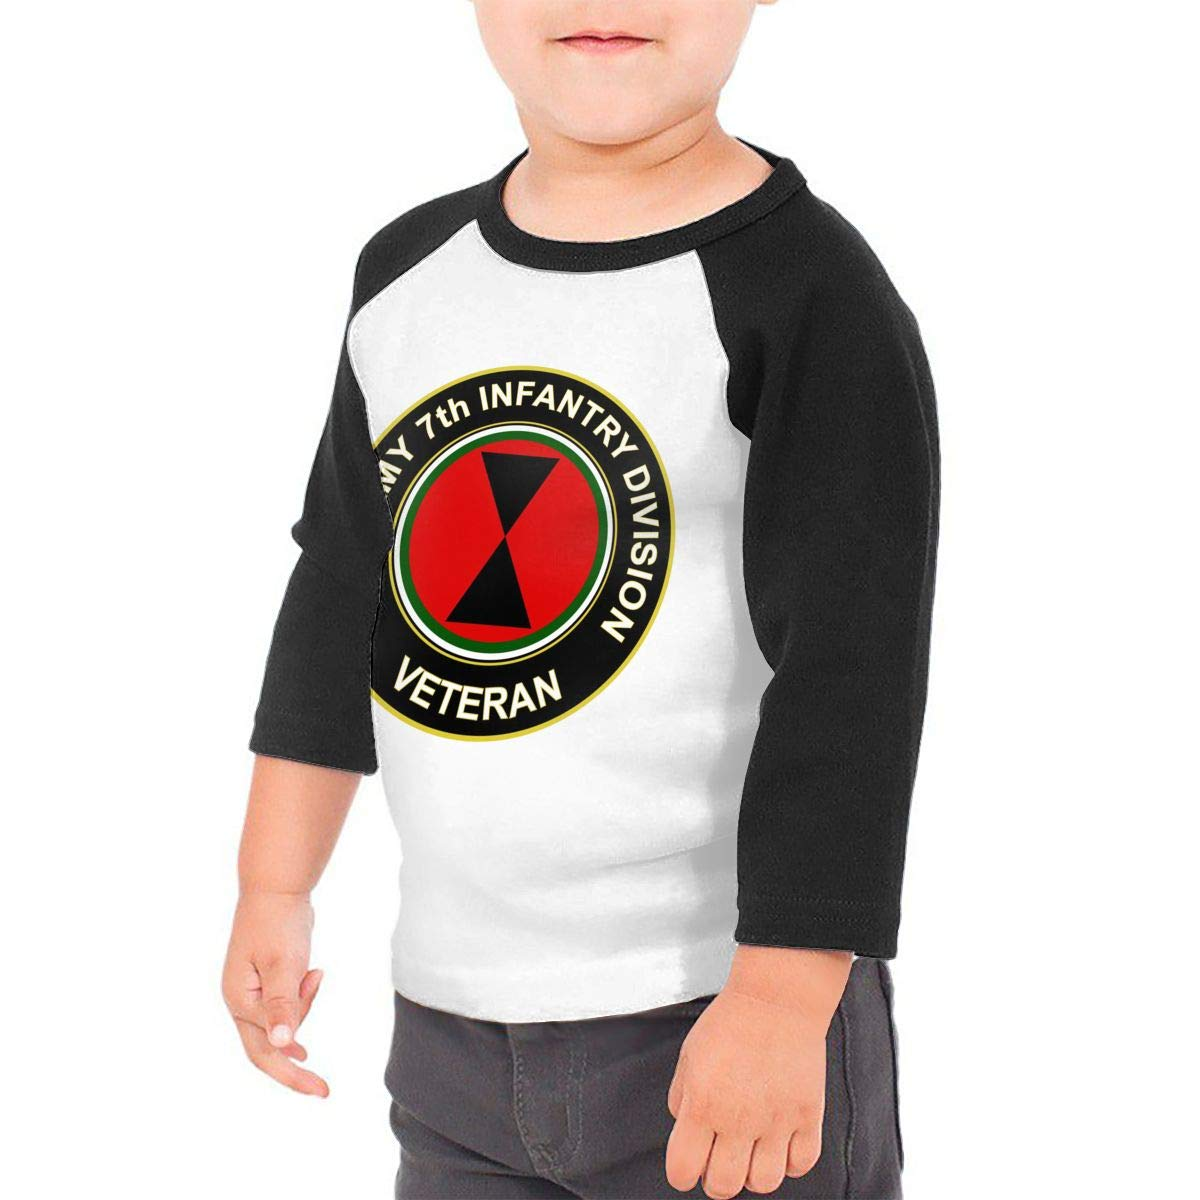 US Army 7th Infantry Division Veteran Unisex Toddler Baseball Jersey Contrast 3//4 Sleeves Tee